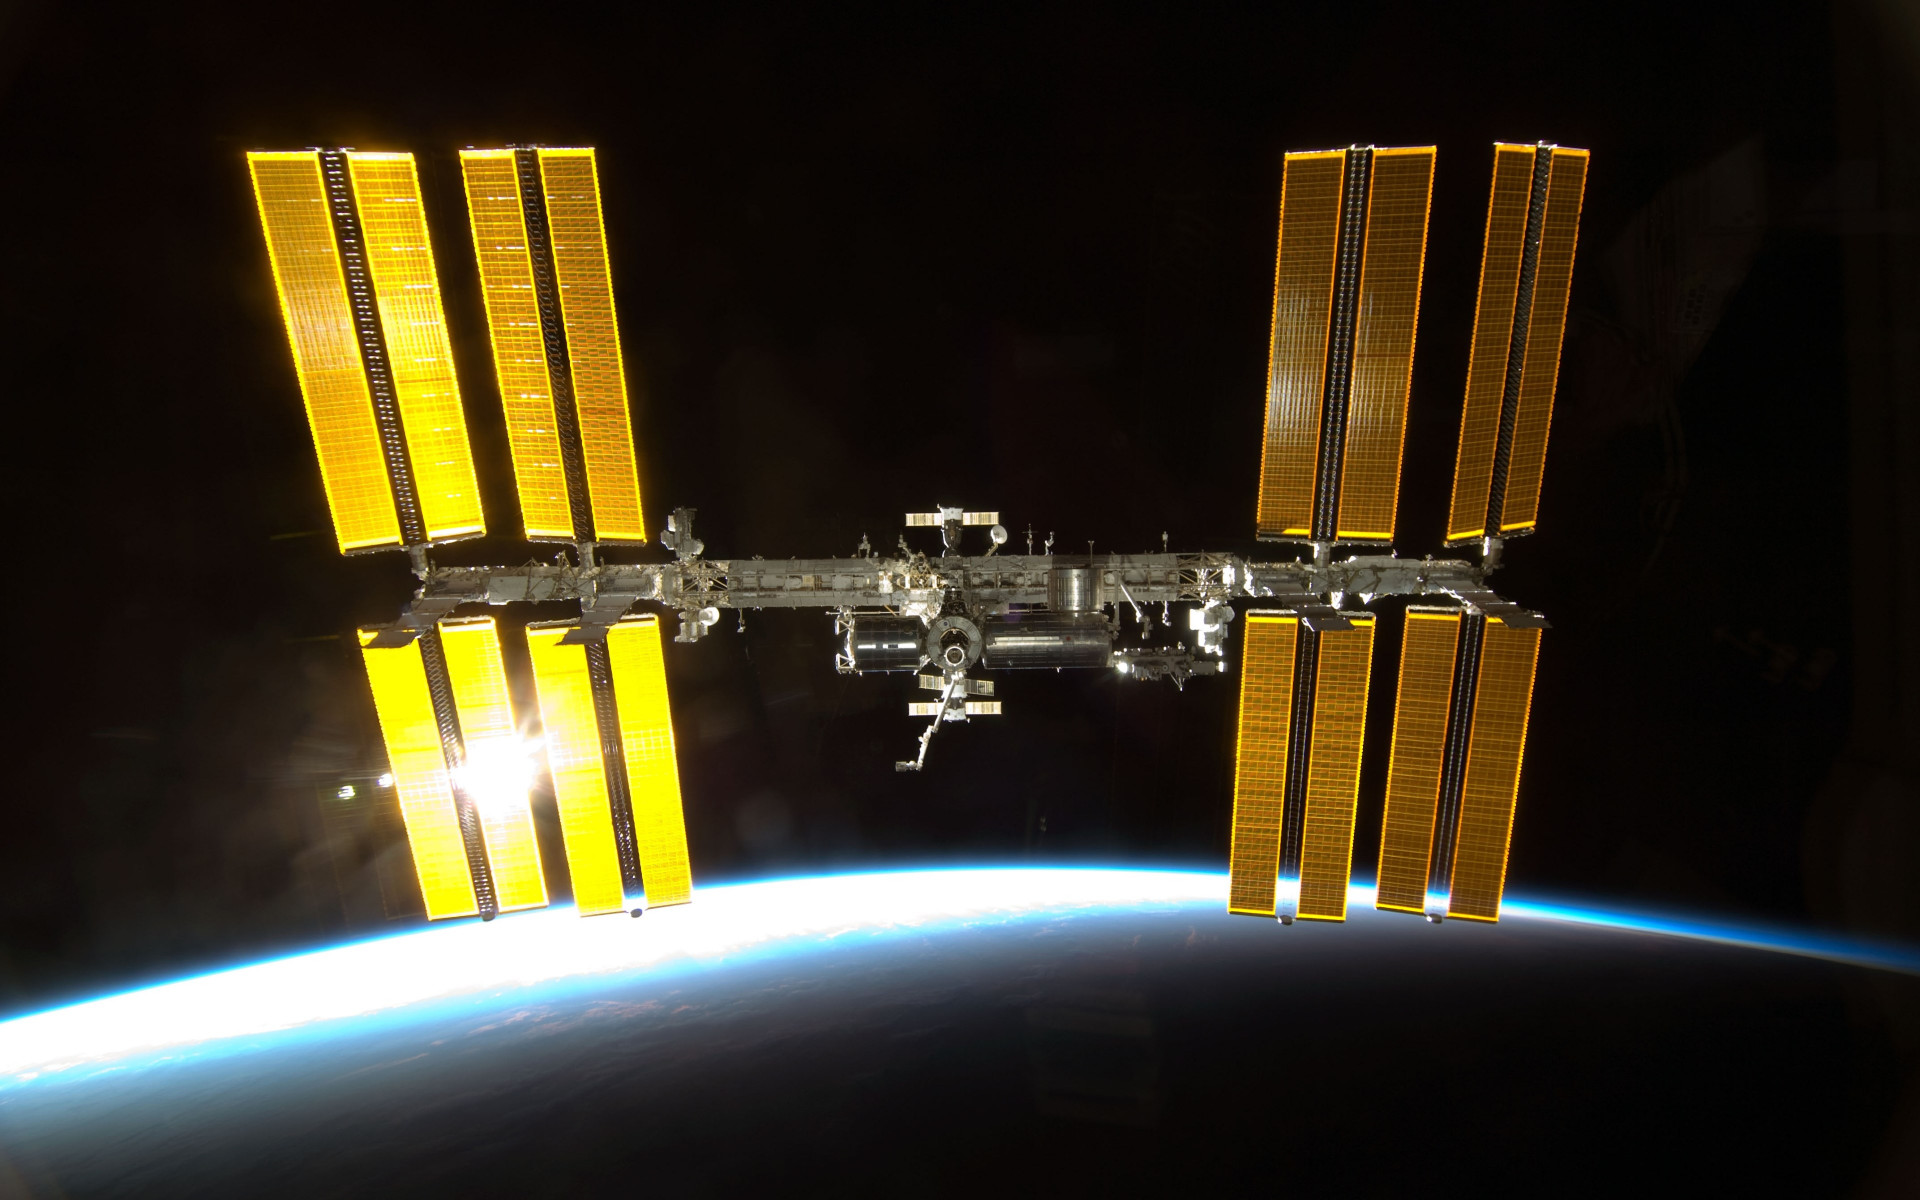 International Space Station wallpaper 1920x1200